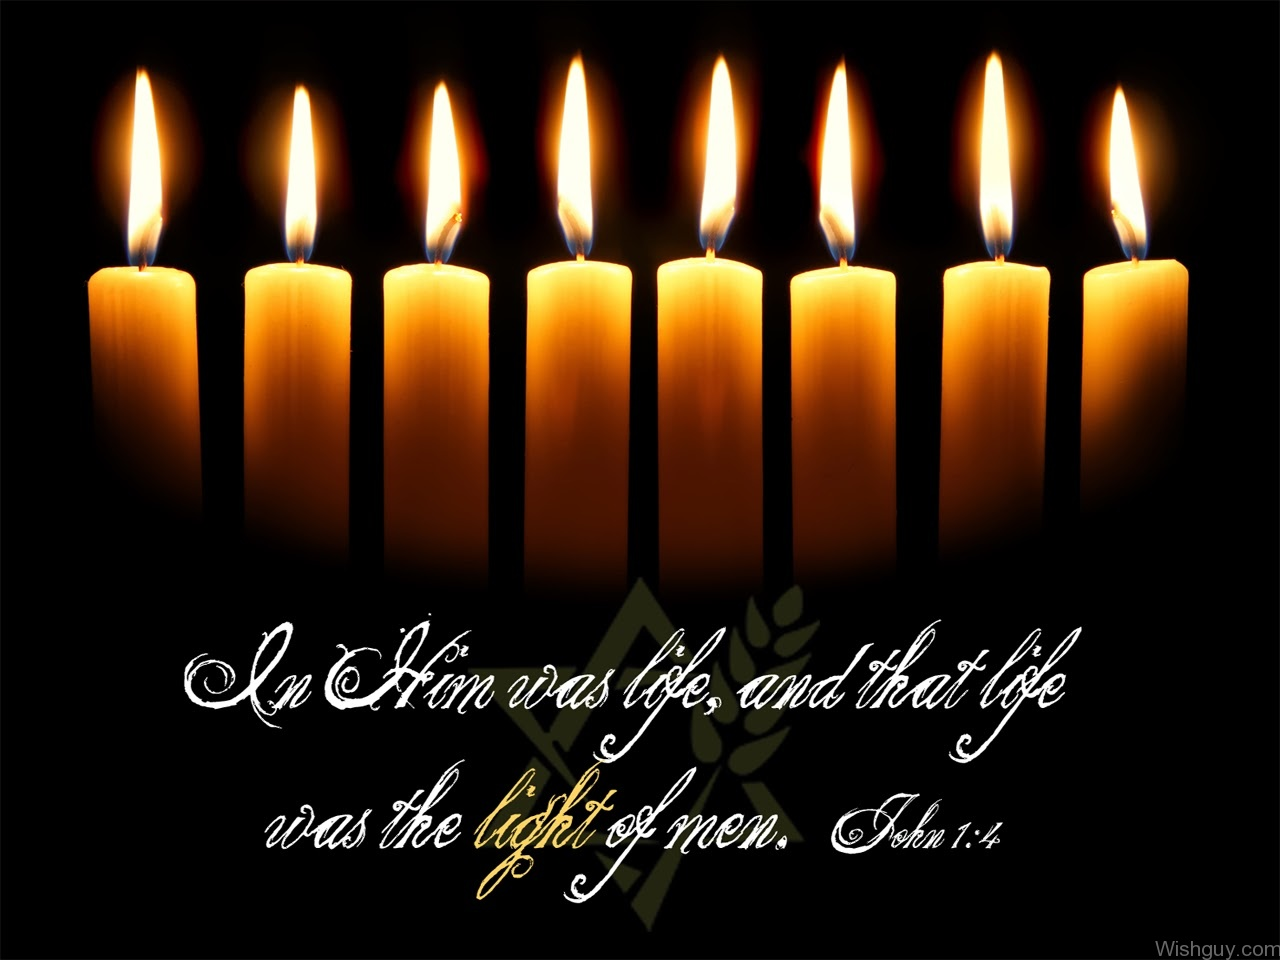 Hanukkah Wishes Wishes Greetings Pictures Wish Guy